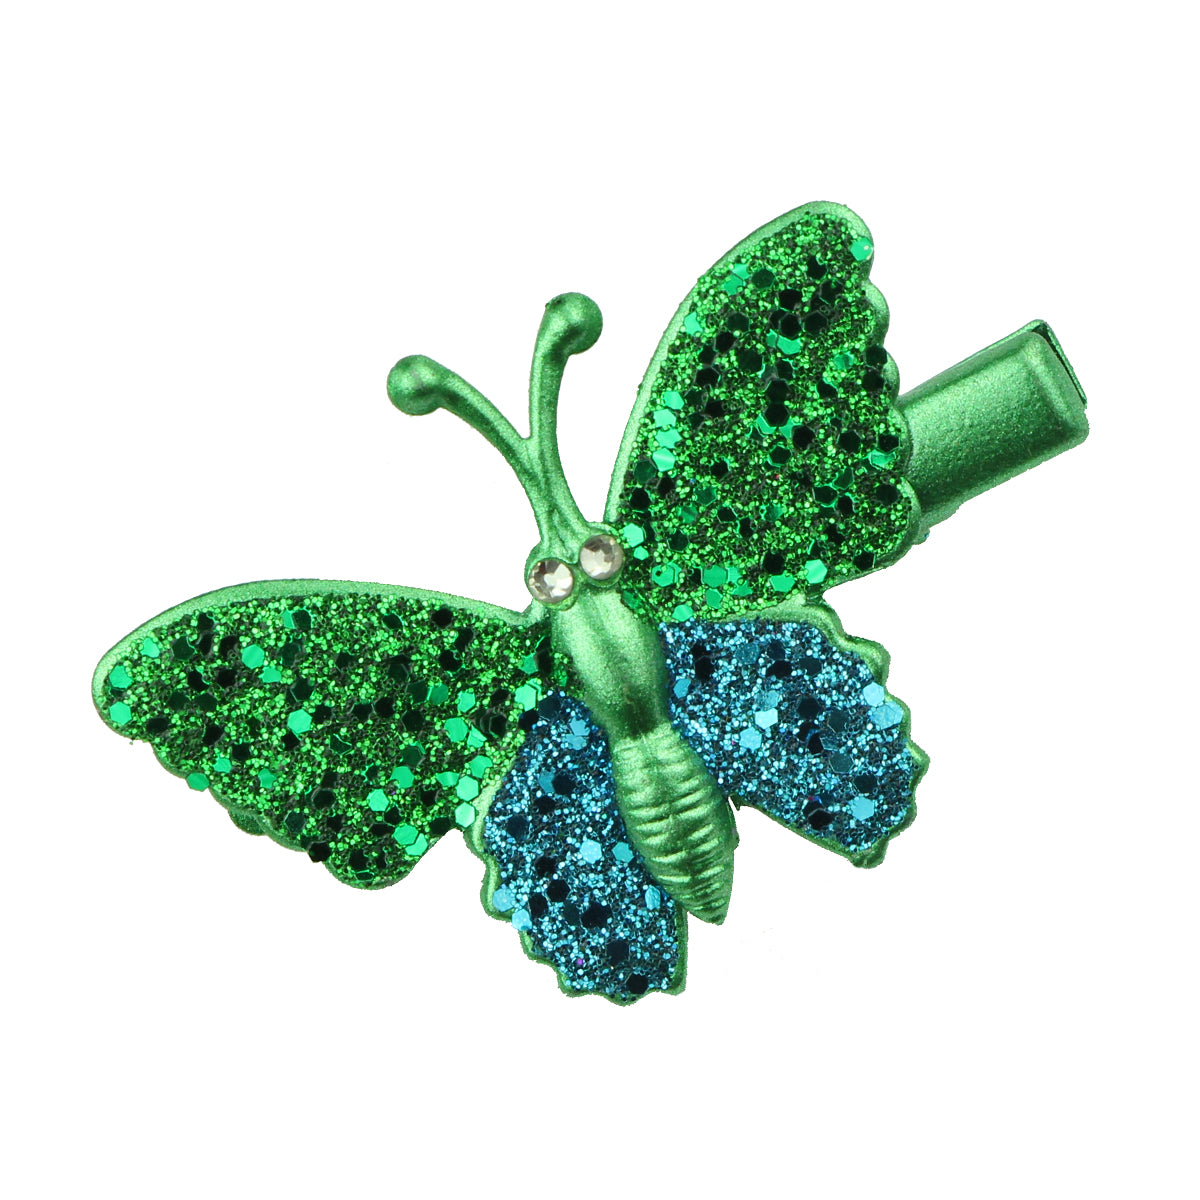 green gold rhinestone glitter butterfly alligator hair clip barrettes hair grips girl hair accessories at factory price 6489 - SOHOBUCKS CO.,LIMITED